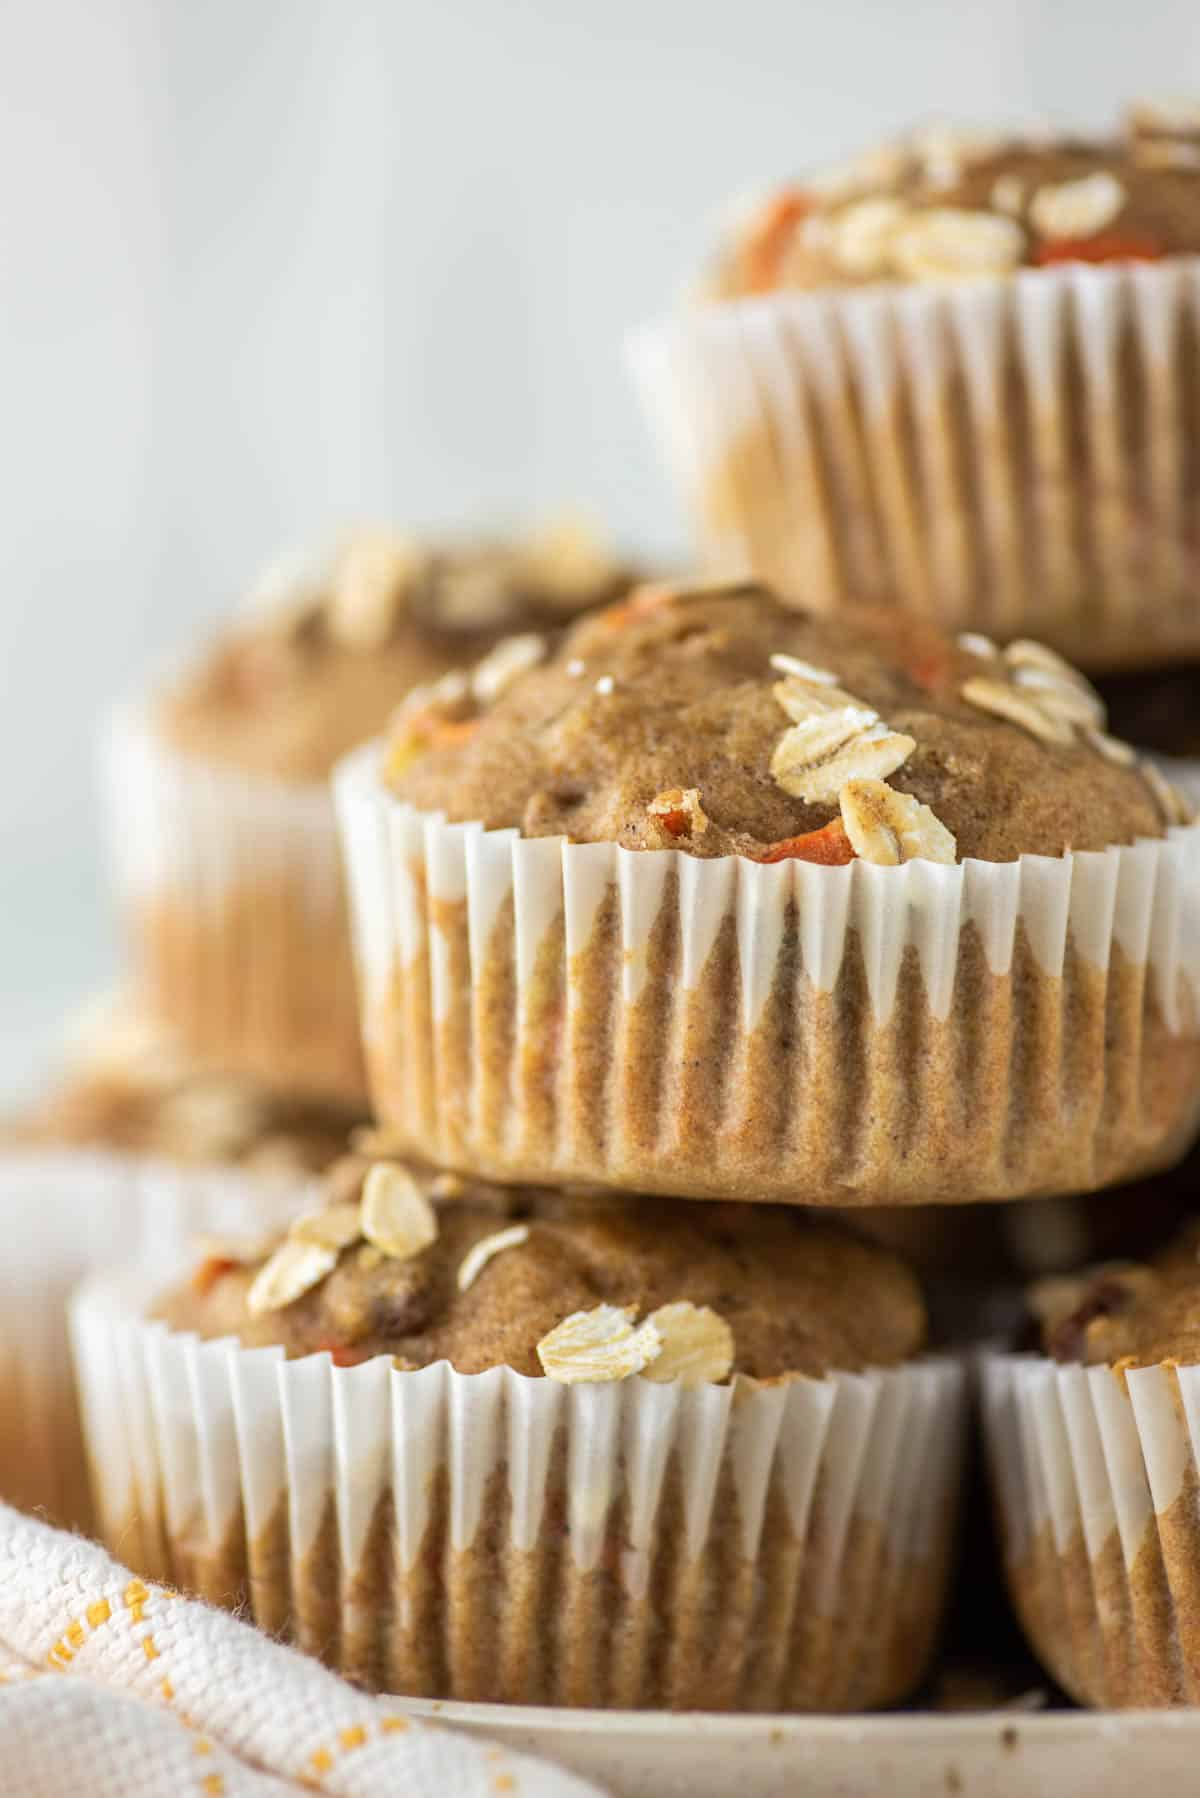 muffins made with carrots and bananas stacked on top of each other